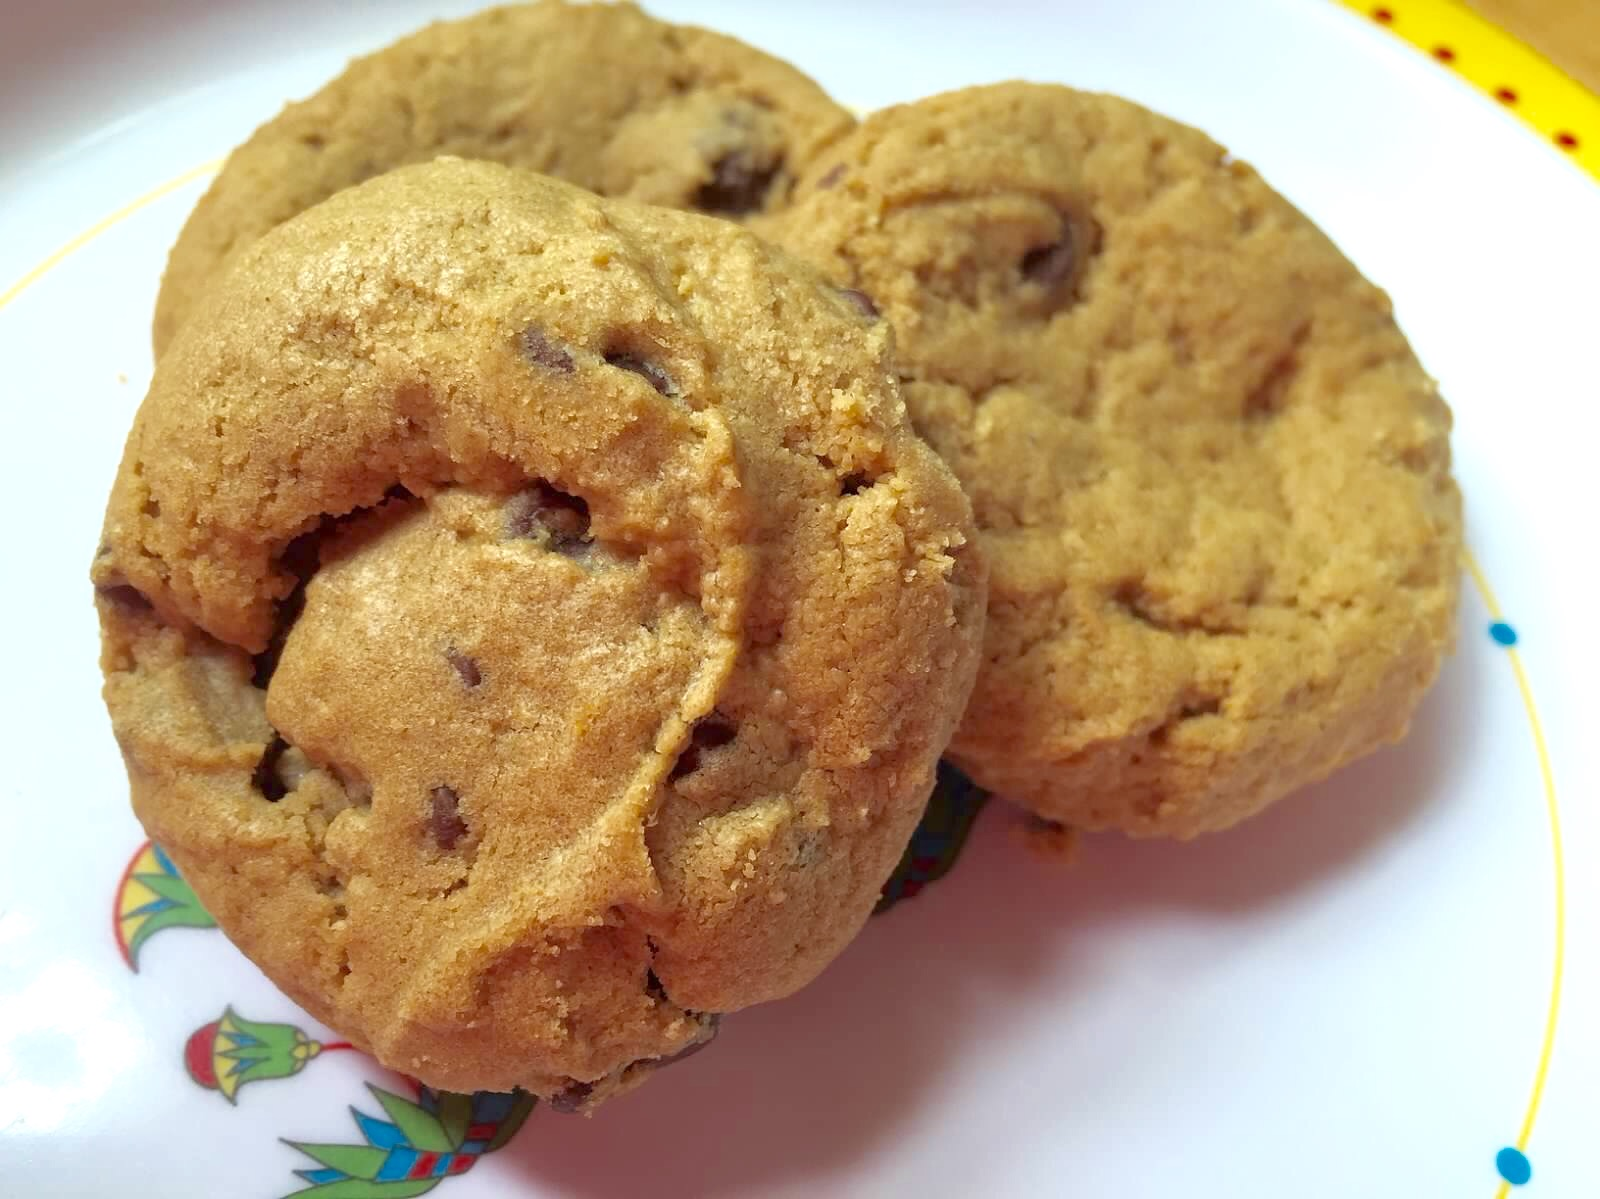 Gluten Free Awesome Peanut Butter Chocolate Chip Cookies from Alexandersmom.com